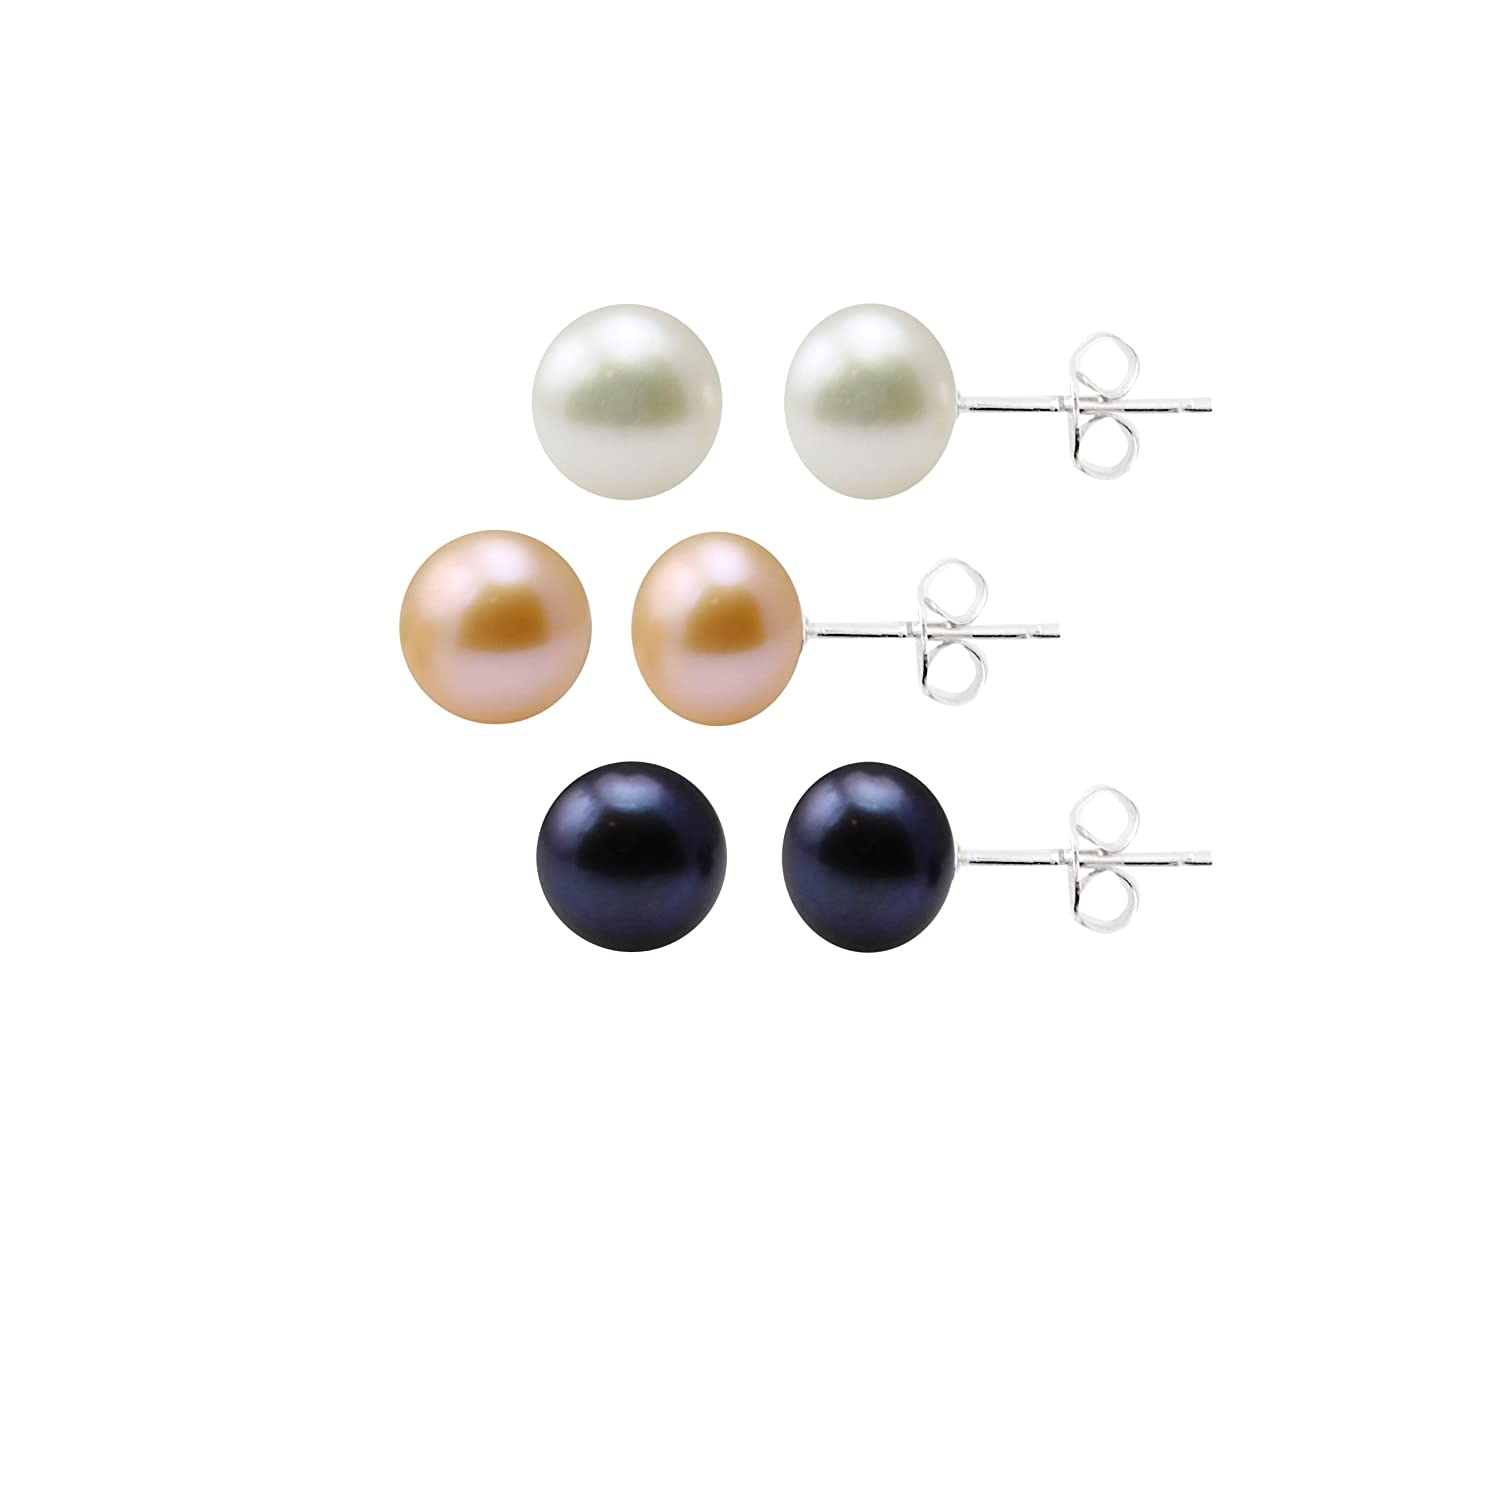 b03aa3cd2 Amazon.com: Sterling Silver Freshwater Cultured Pearl Stud Earrings 3-Piece  Set in White, Dyed Peacock Black and Dyed Blush Rose (8-8.5mm): Jewelry